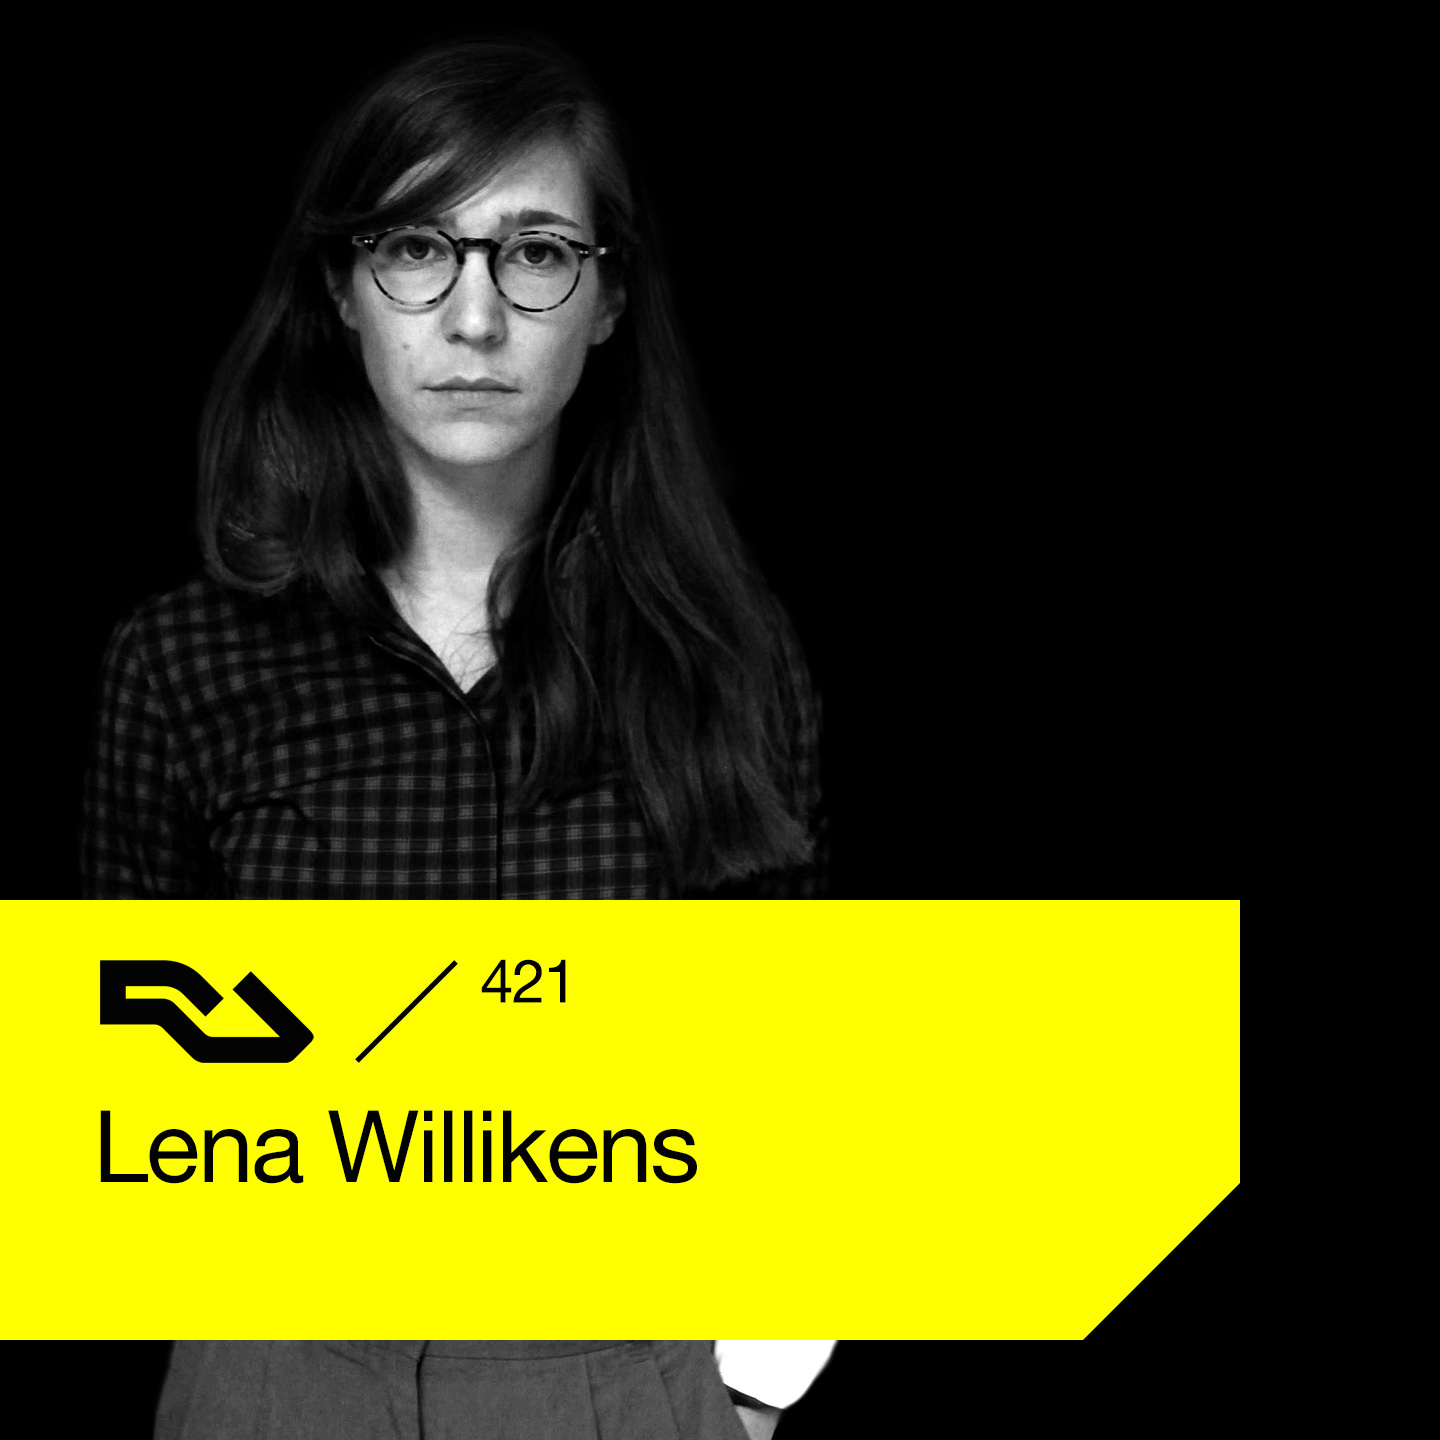 RA.421 Lena Willikens